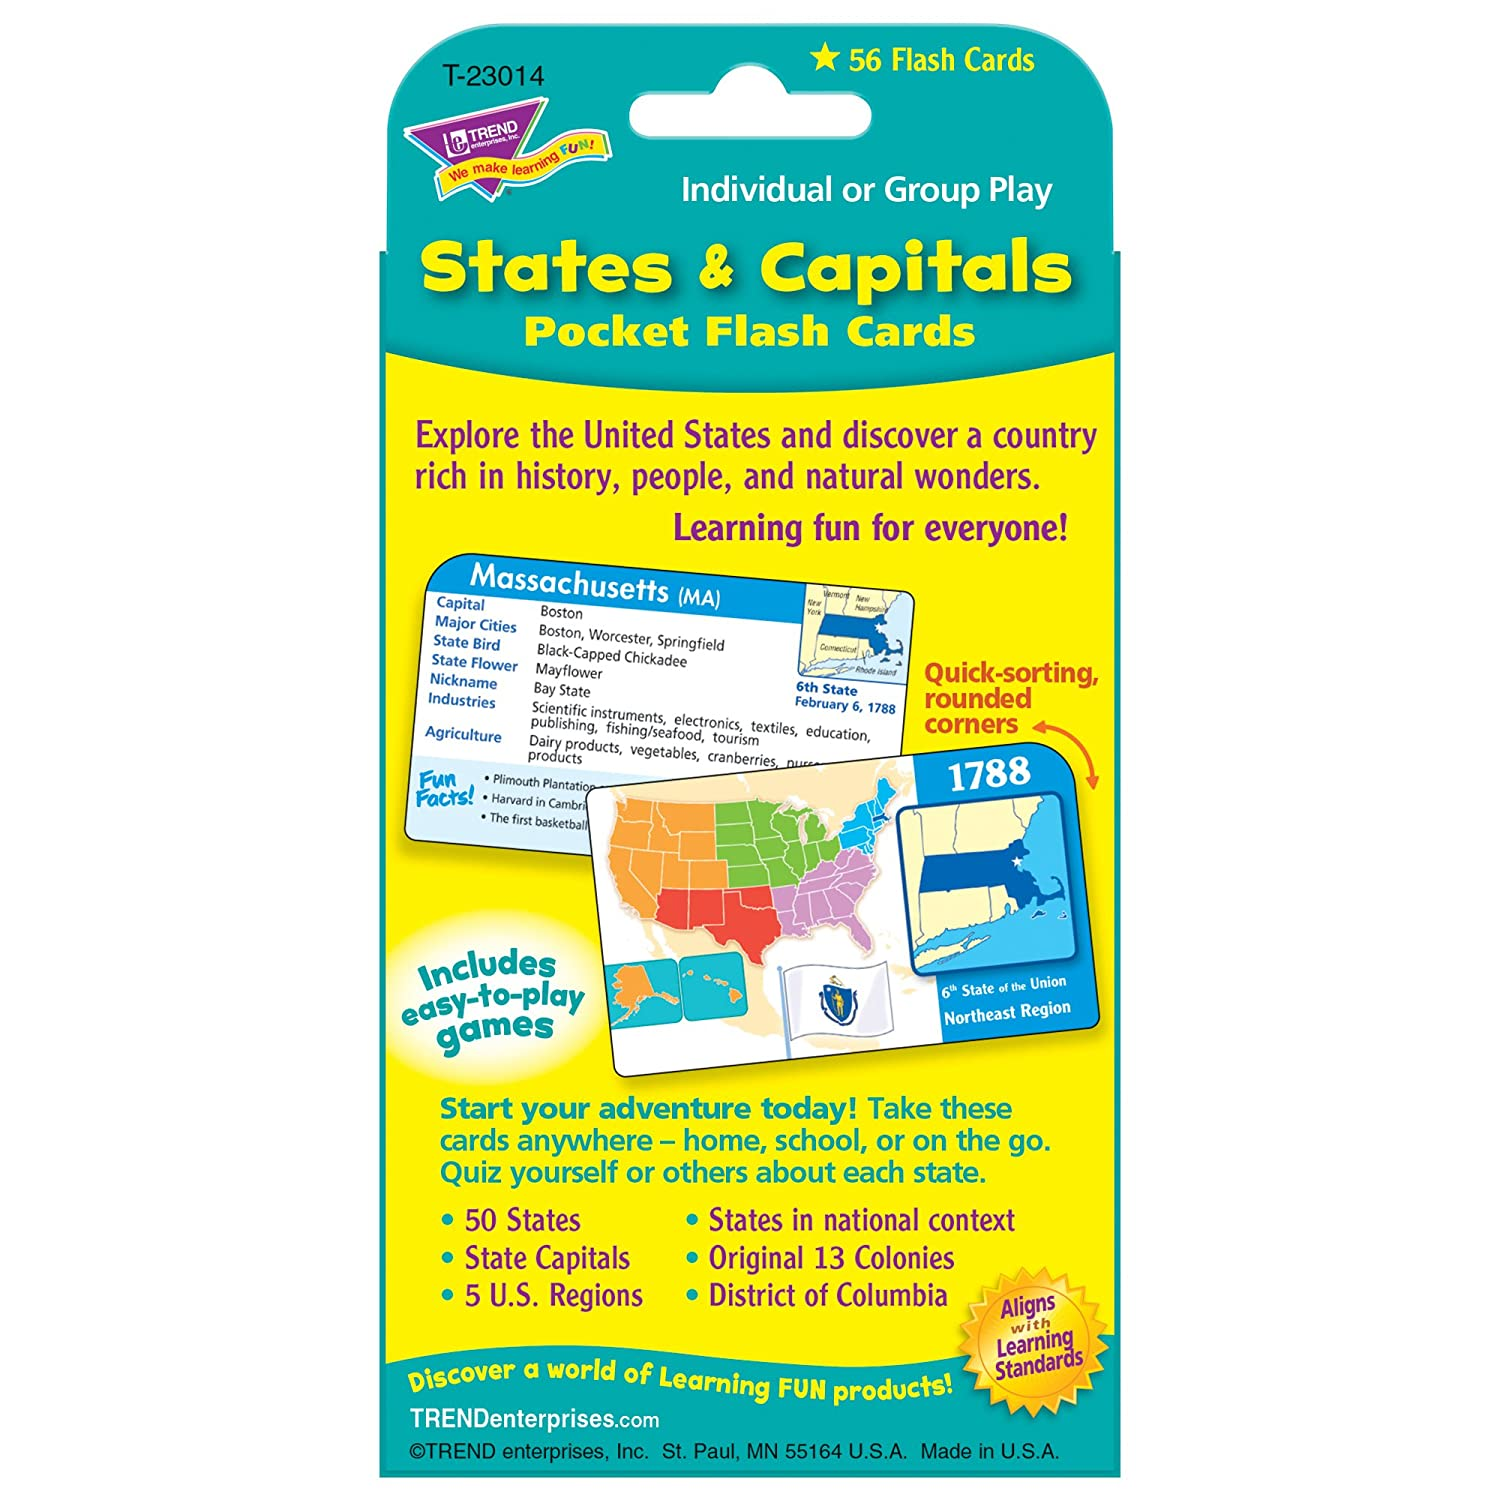 photo regarding States and Capitals Flash Cards Printable named Claims Capitals Pocket Flash Playing cards